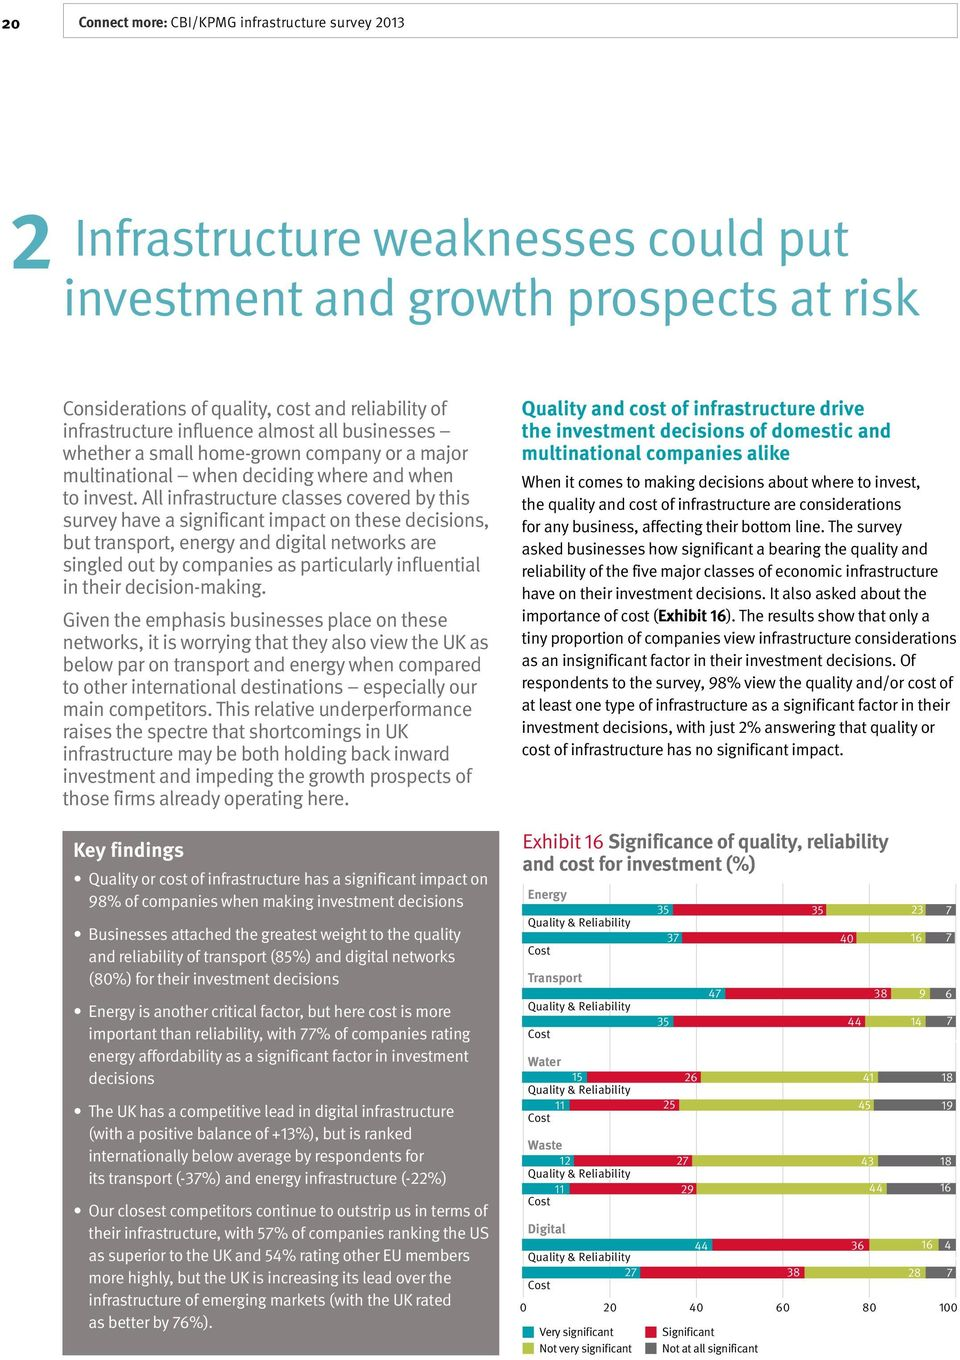 All infrastructure classes covered by this survey have a significant impact on these decisions, but transport, energy and digital networks are singled out by companies as particularly influential in